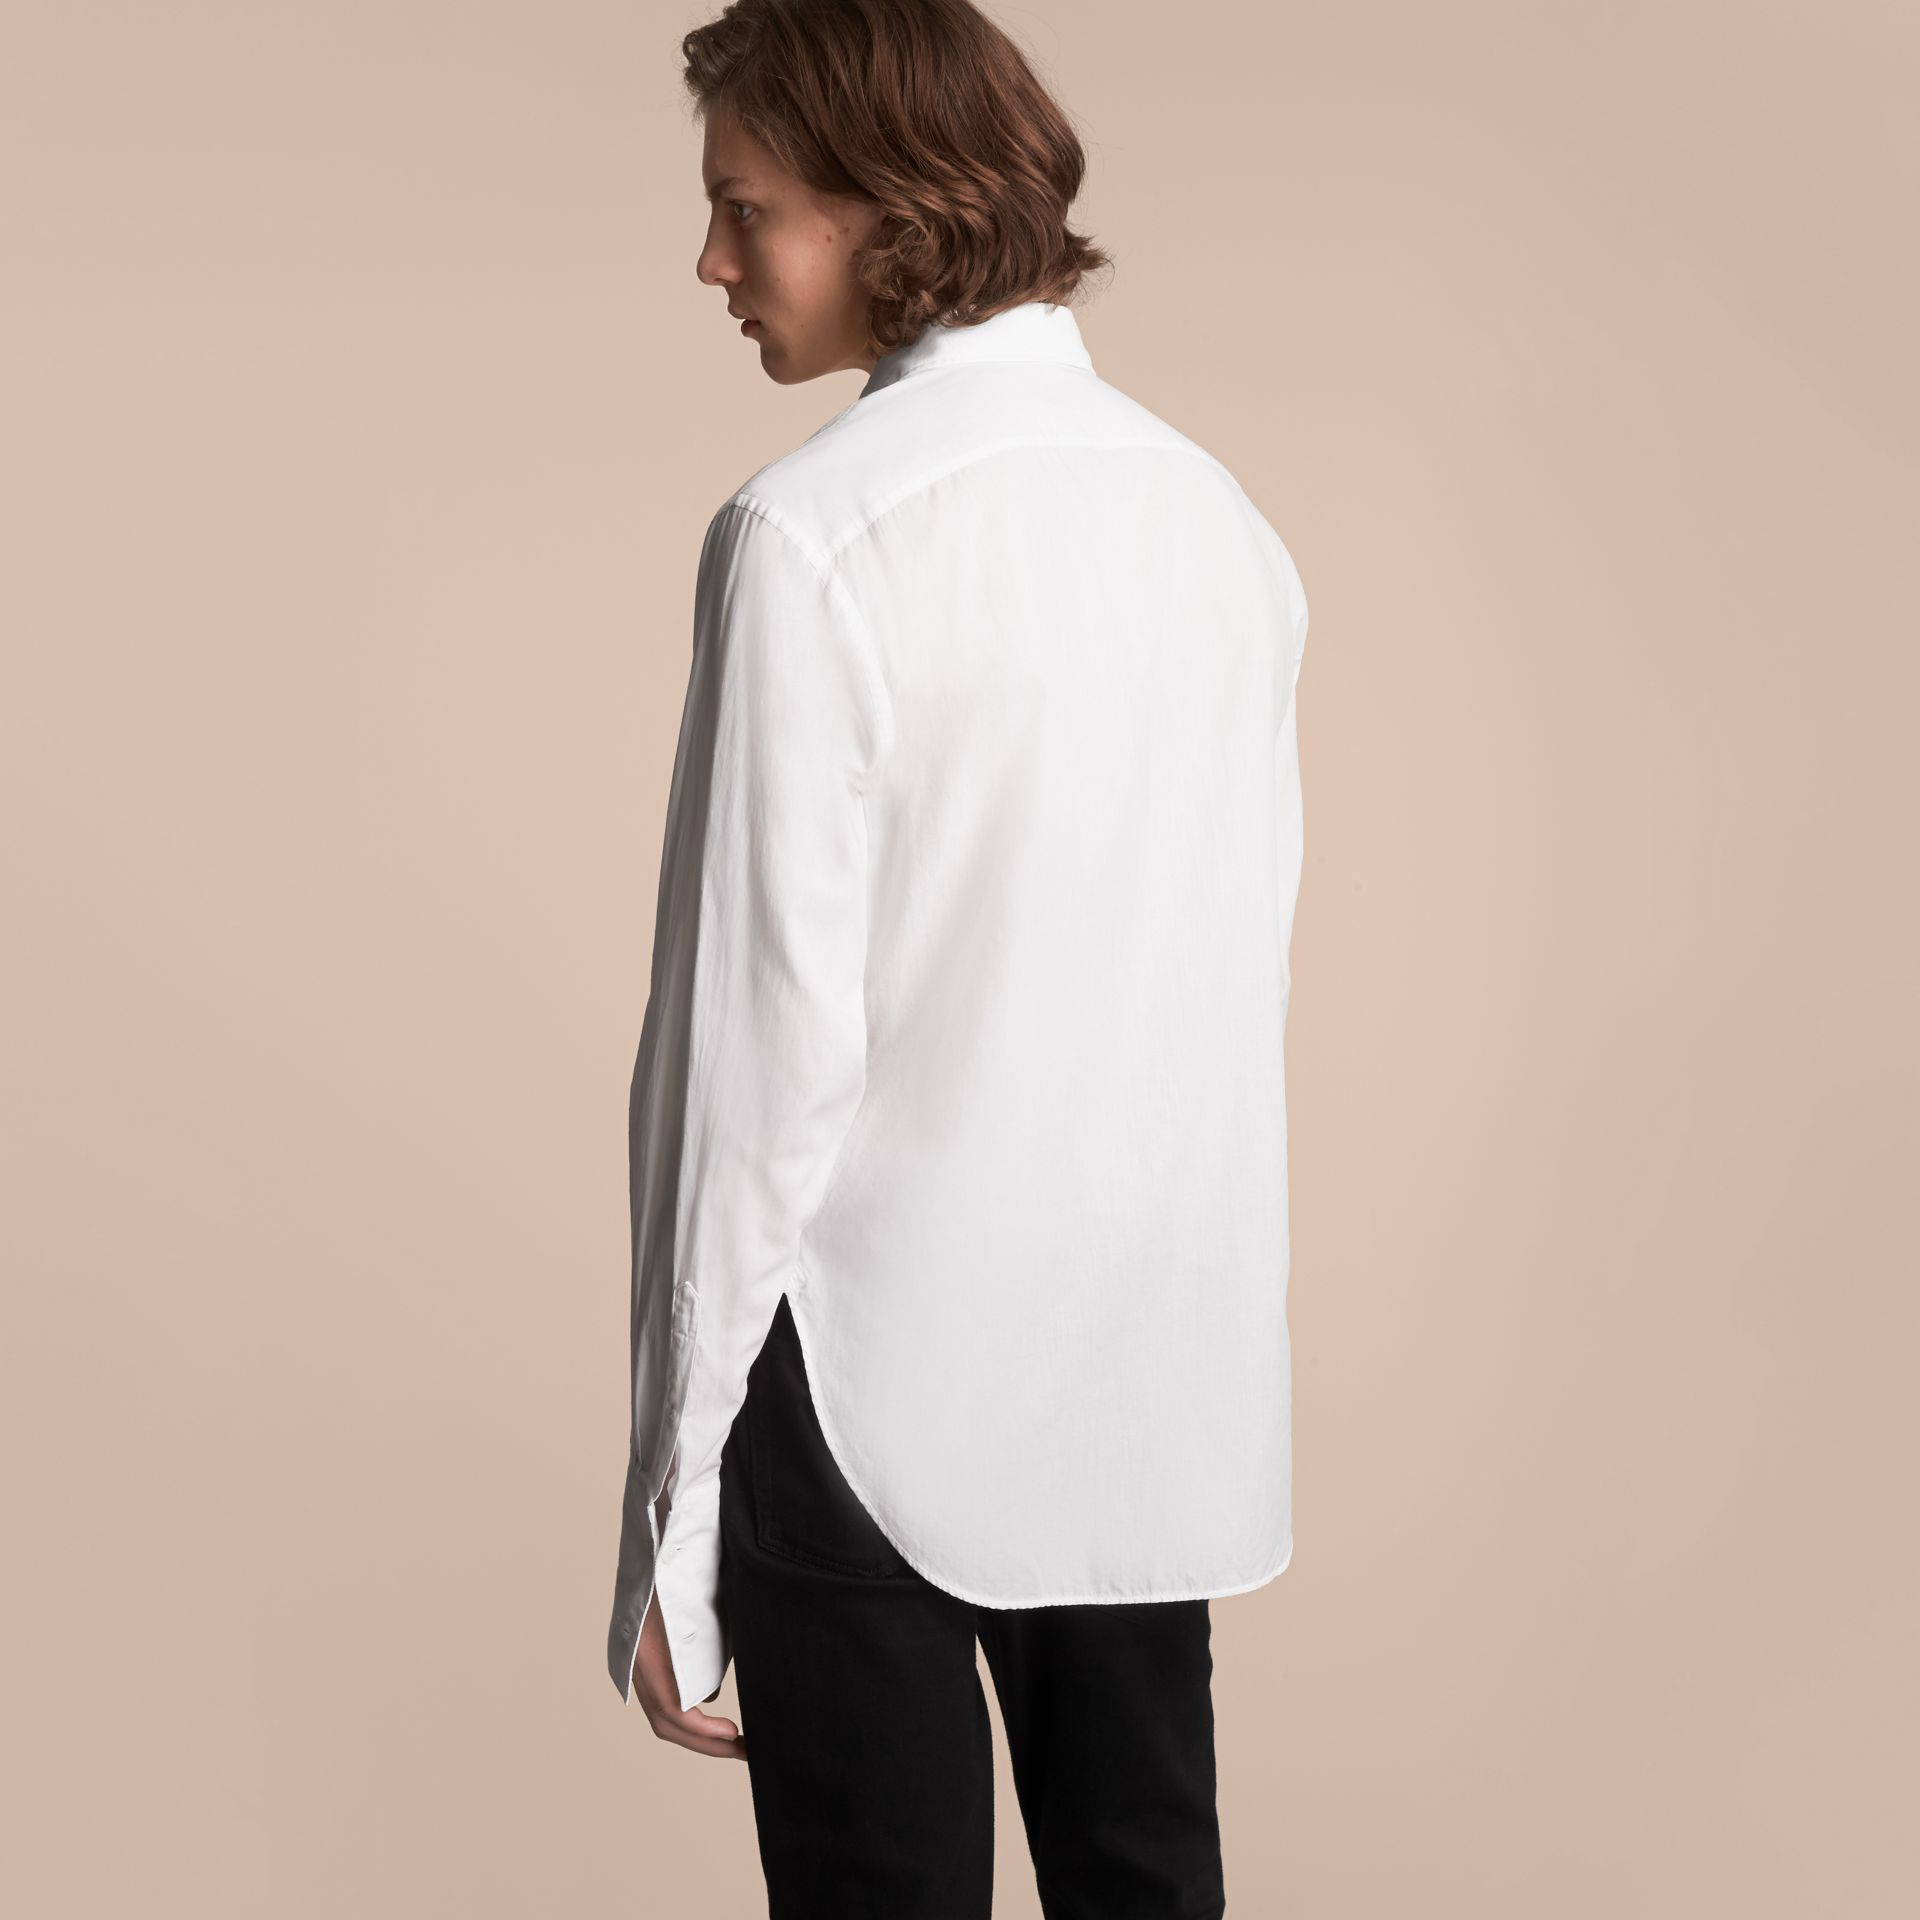 Unisex Double-cuff Pintuck Bib Cotton Shirt in White - Men | Burberry - gallery image 3